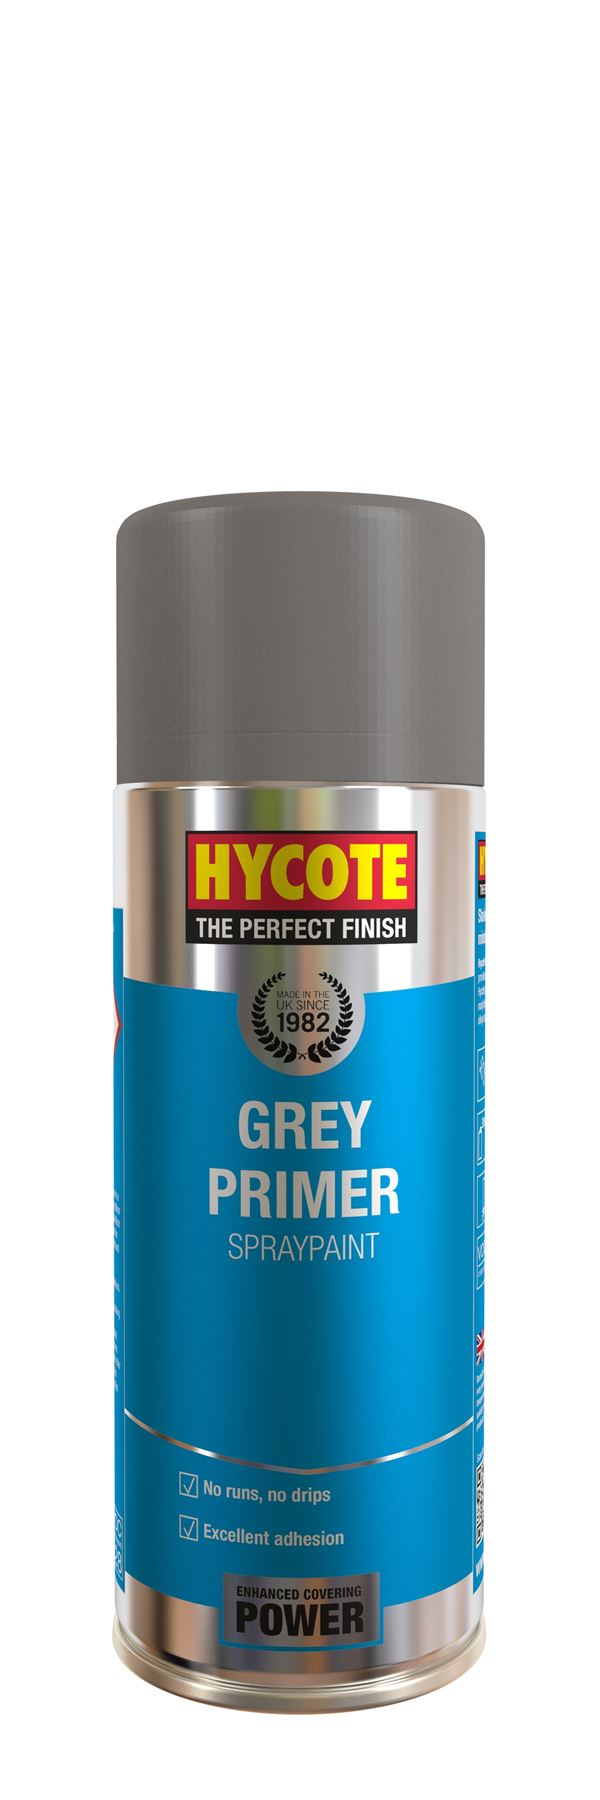 Hycote Grey Primer - 400ml